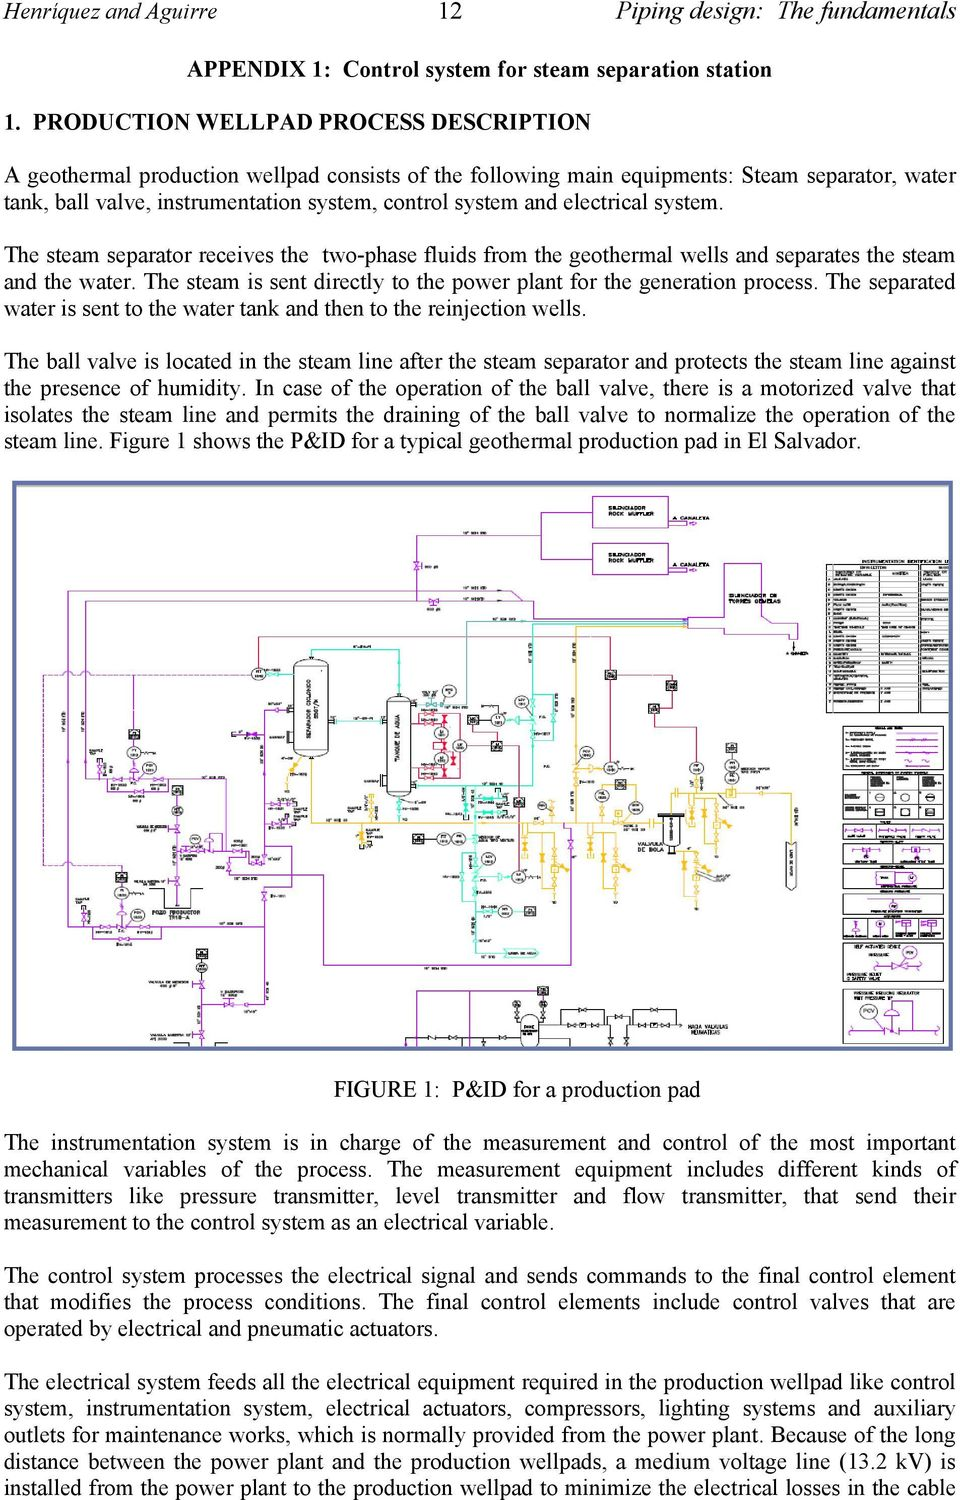 Piping Design The Fundamentals Pdf Layout Course Electrical System Steam Separator Receives Two Phase Fluids From Geothermal Wells